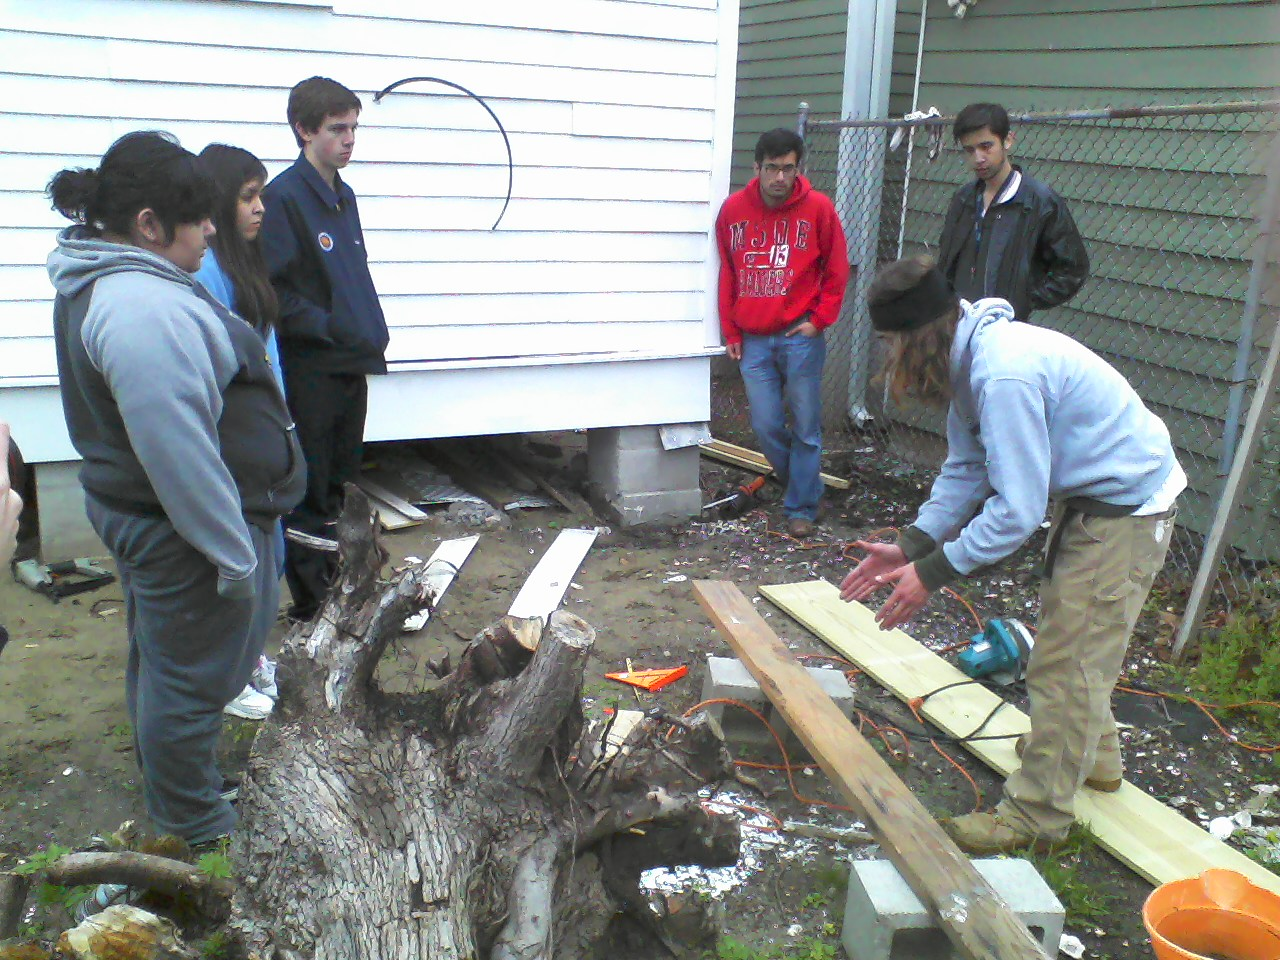 Ryan shows the finer points of wood cutting.